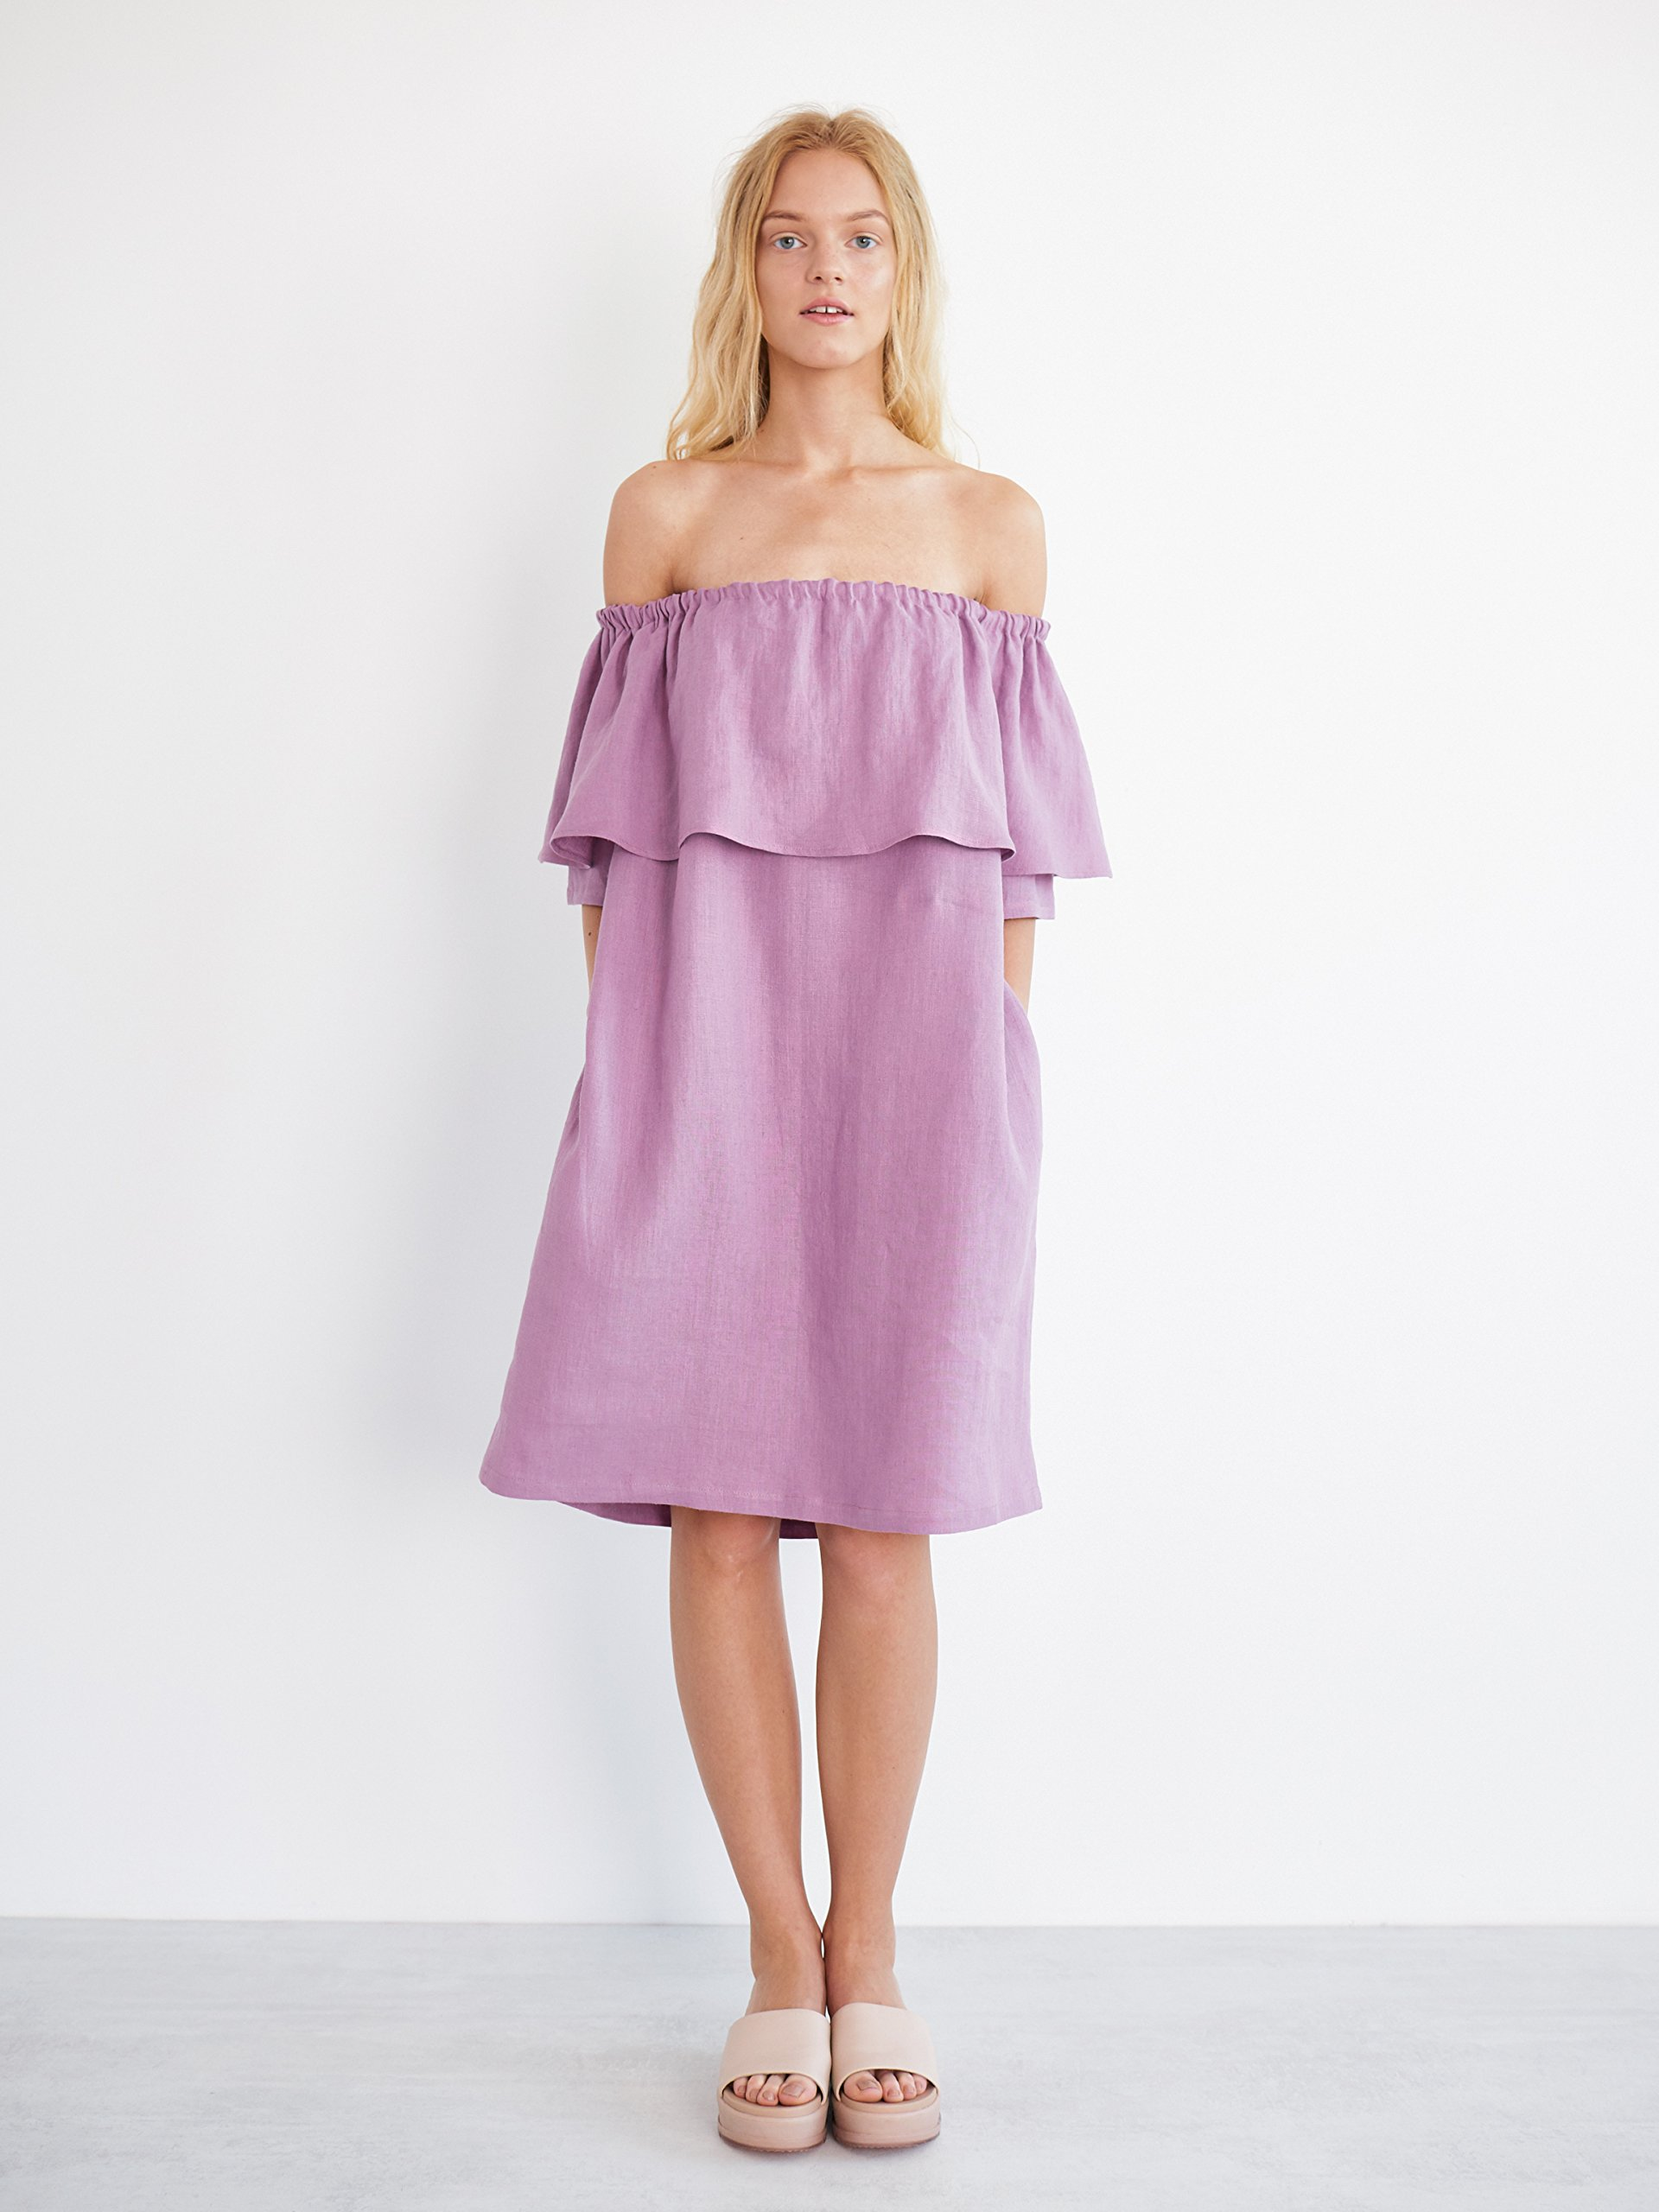 THALIA Ruffle Off The Shoulder Dress in Radiant Orchid Cold Shoulder Summer Dress Midi Knee Length Ruffle